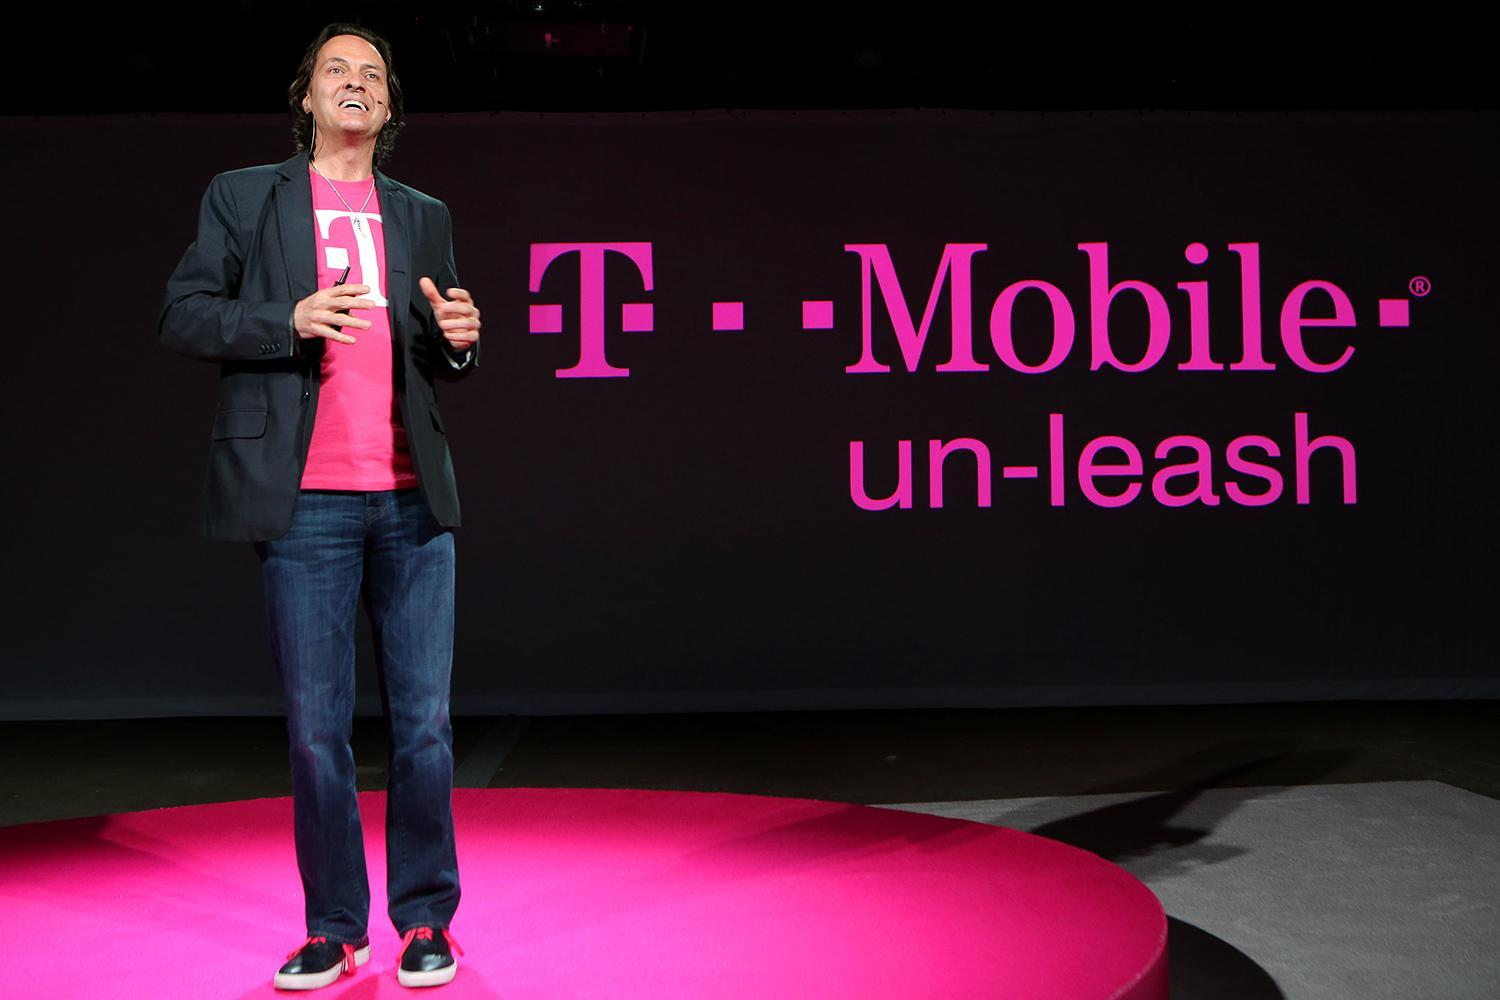 CEO T-Mobile - John Legere